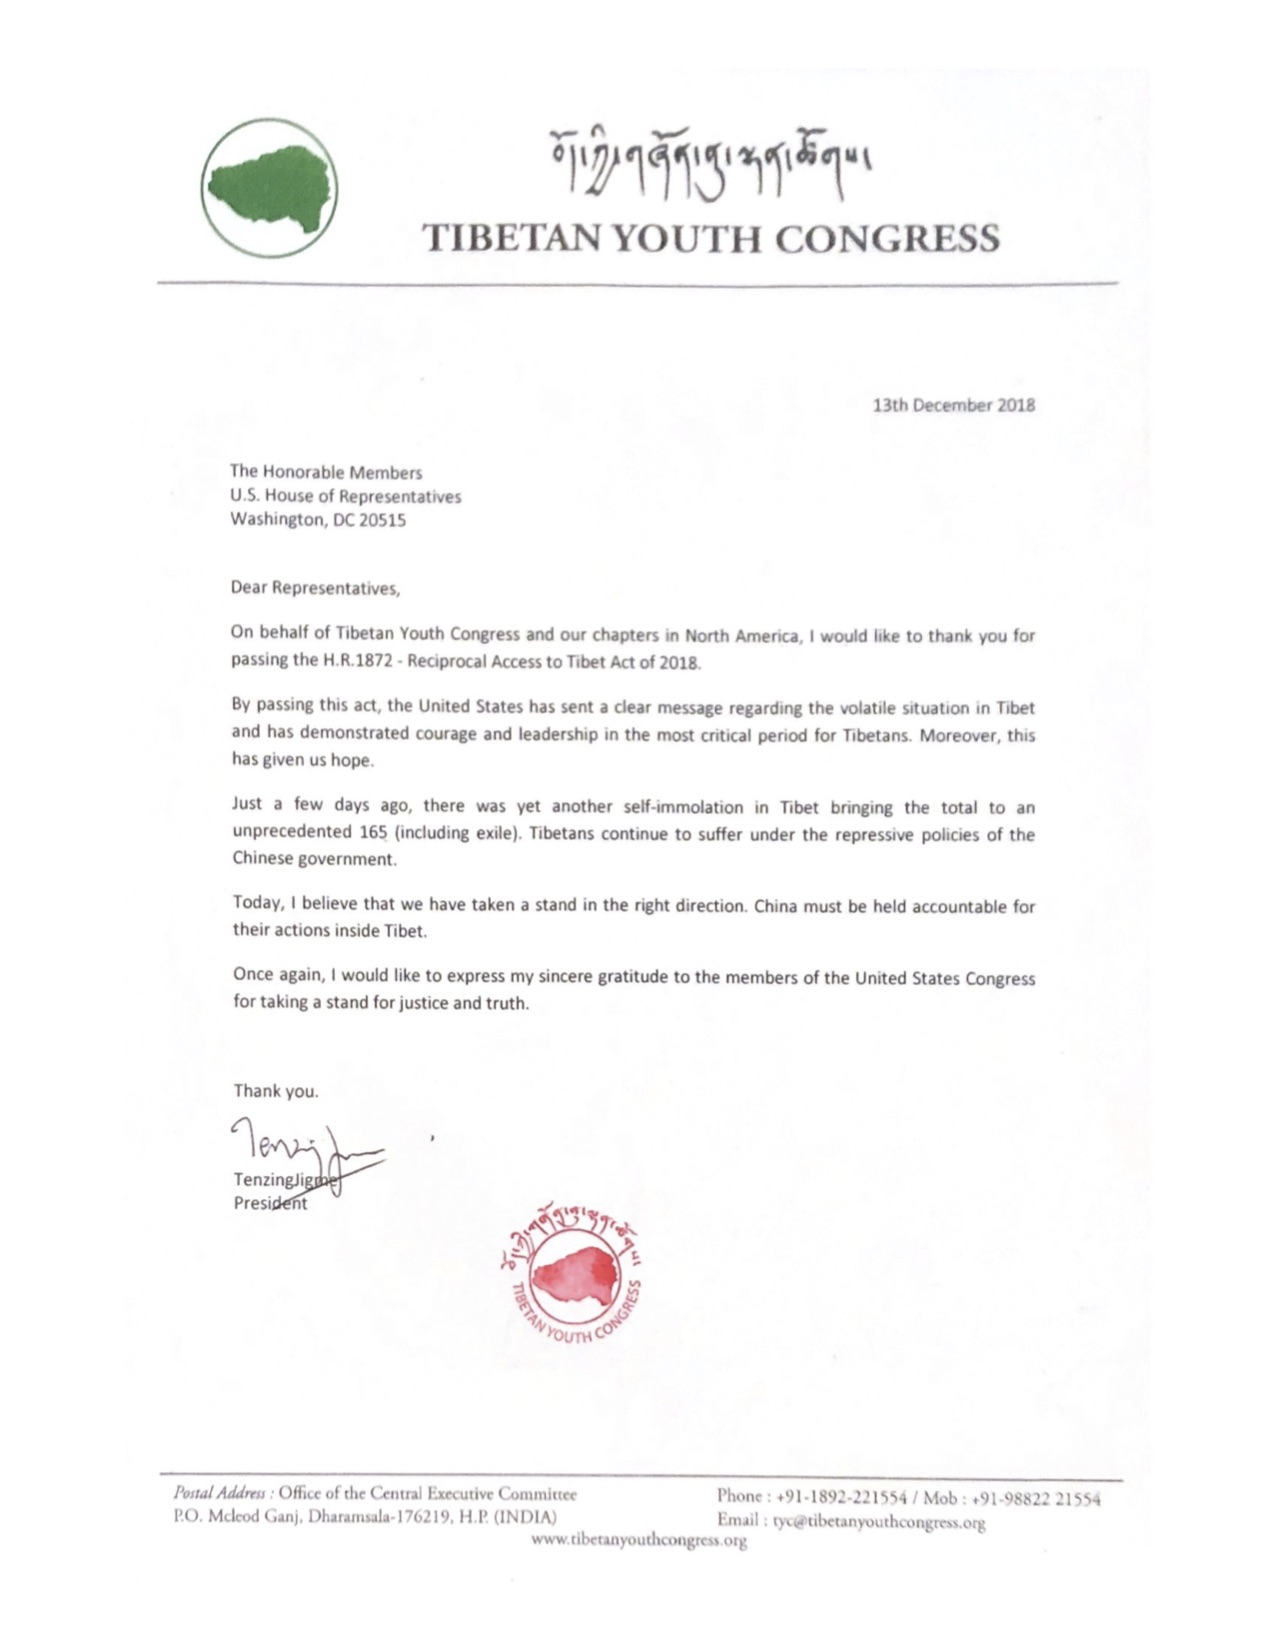 Tibetan Youth Congress | TYC thanks United States Congress